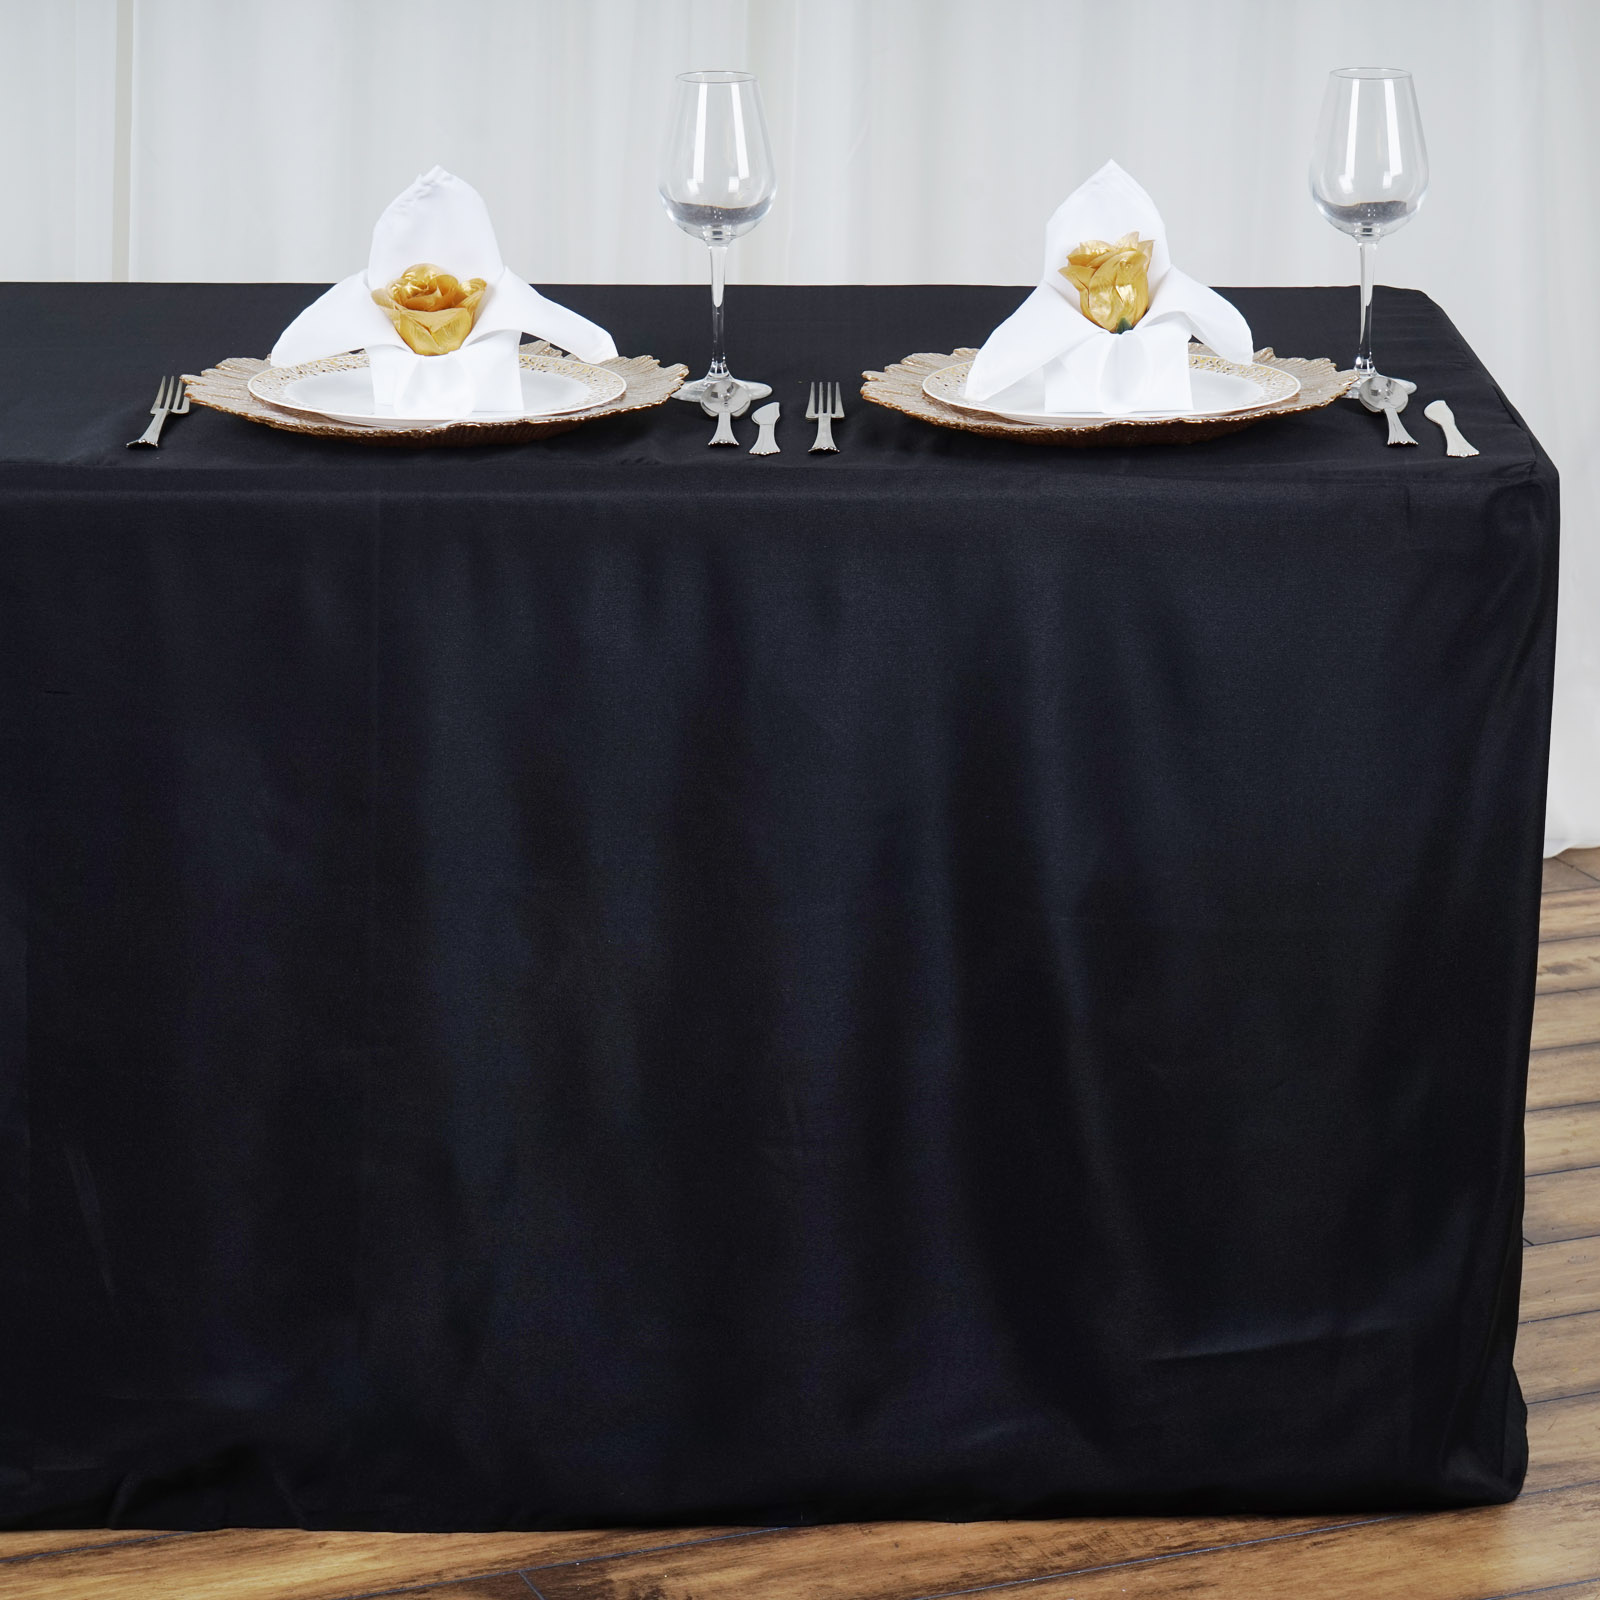 8 feet fitted polyester banquet tablecloth wedding table linens 96 long sale ebay. Black Bedroom Furniture Sets. Home Design Ideas